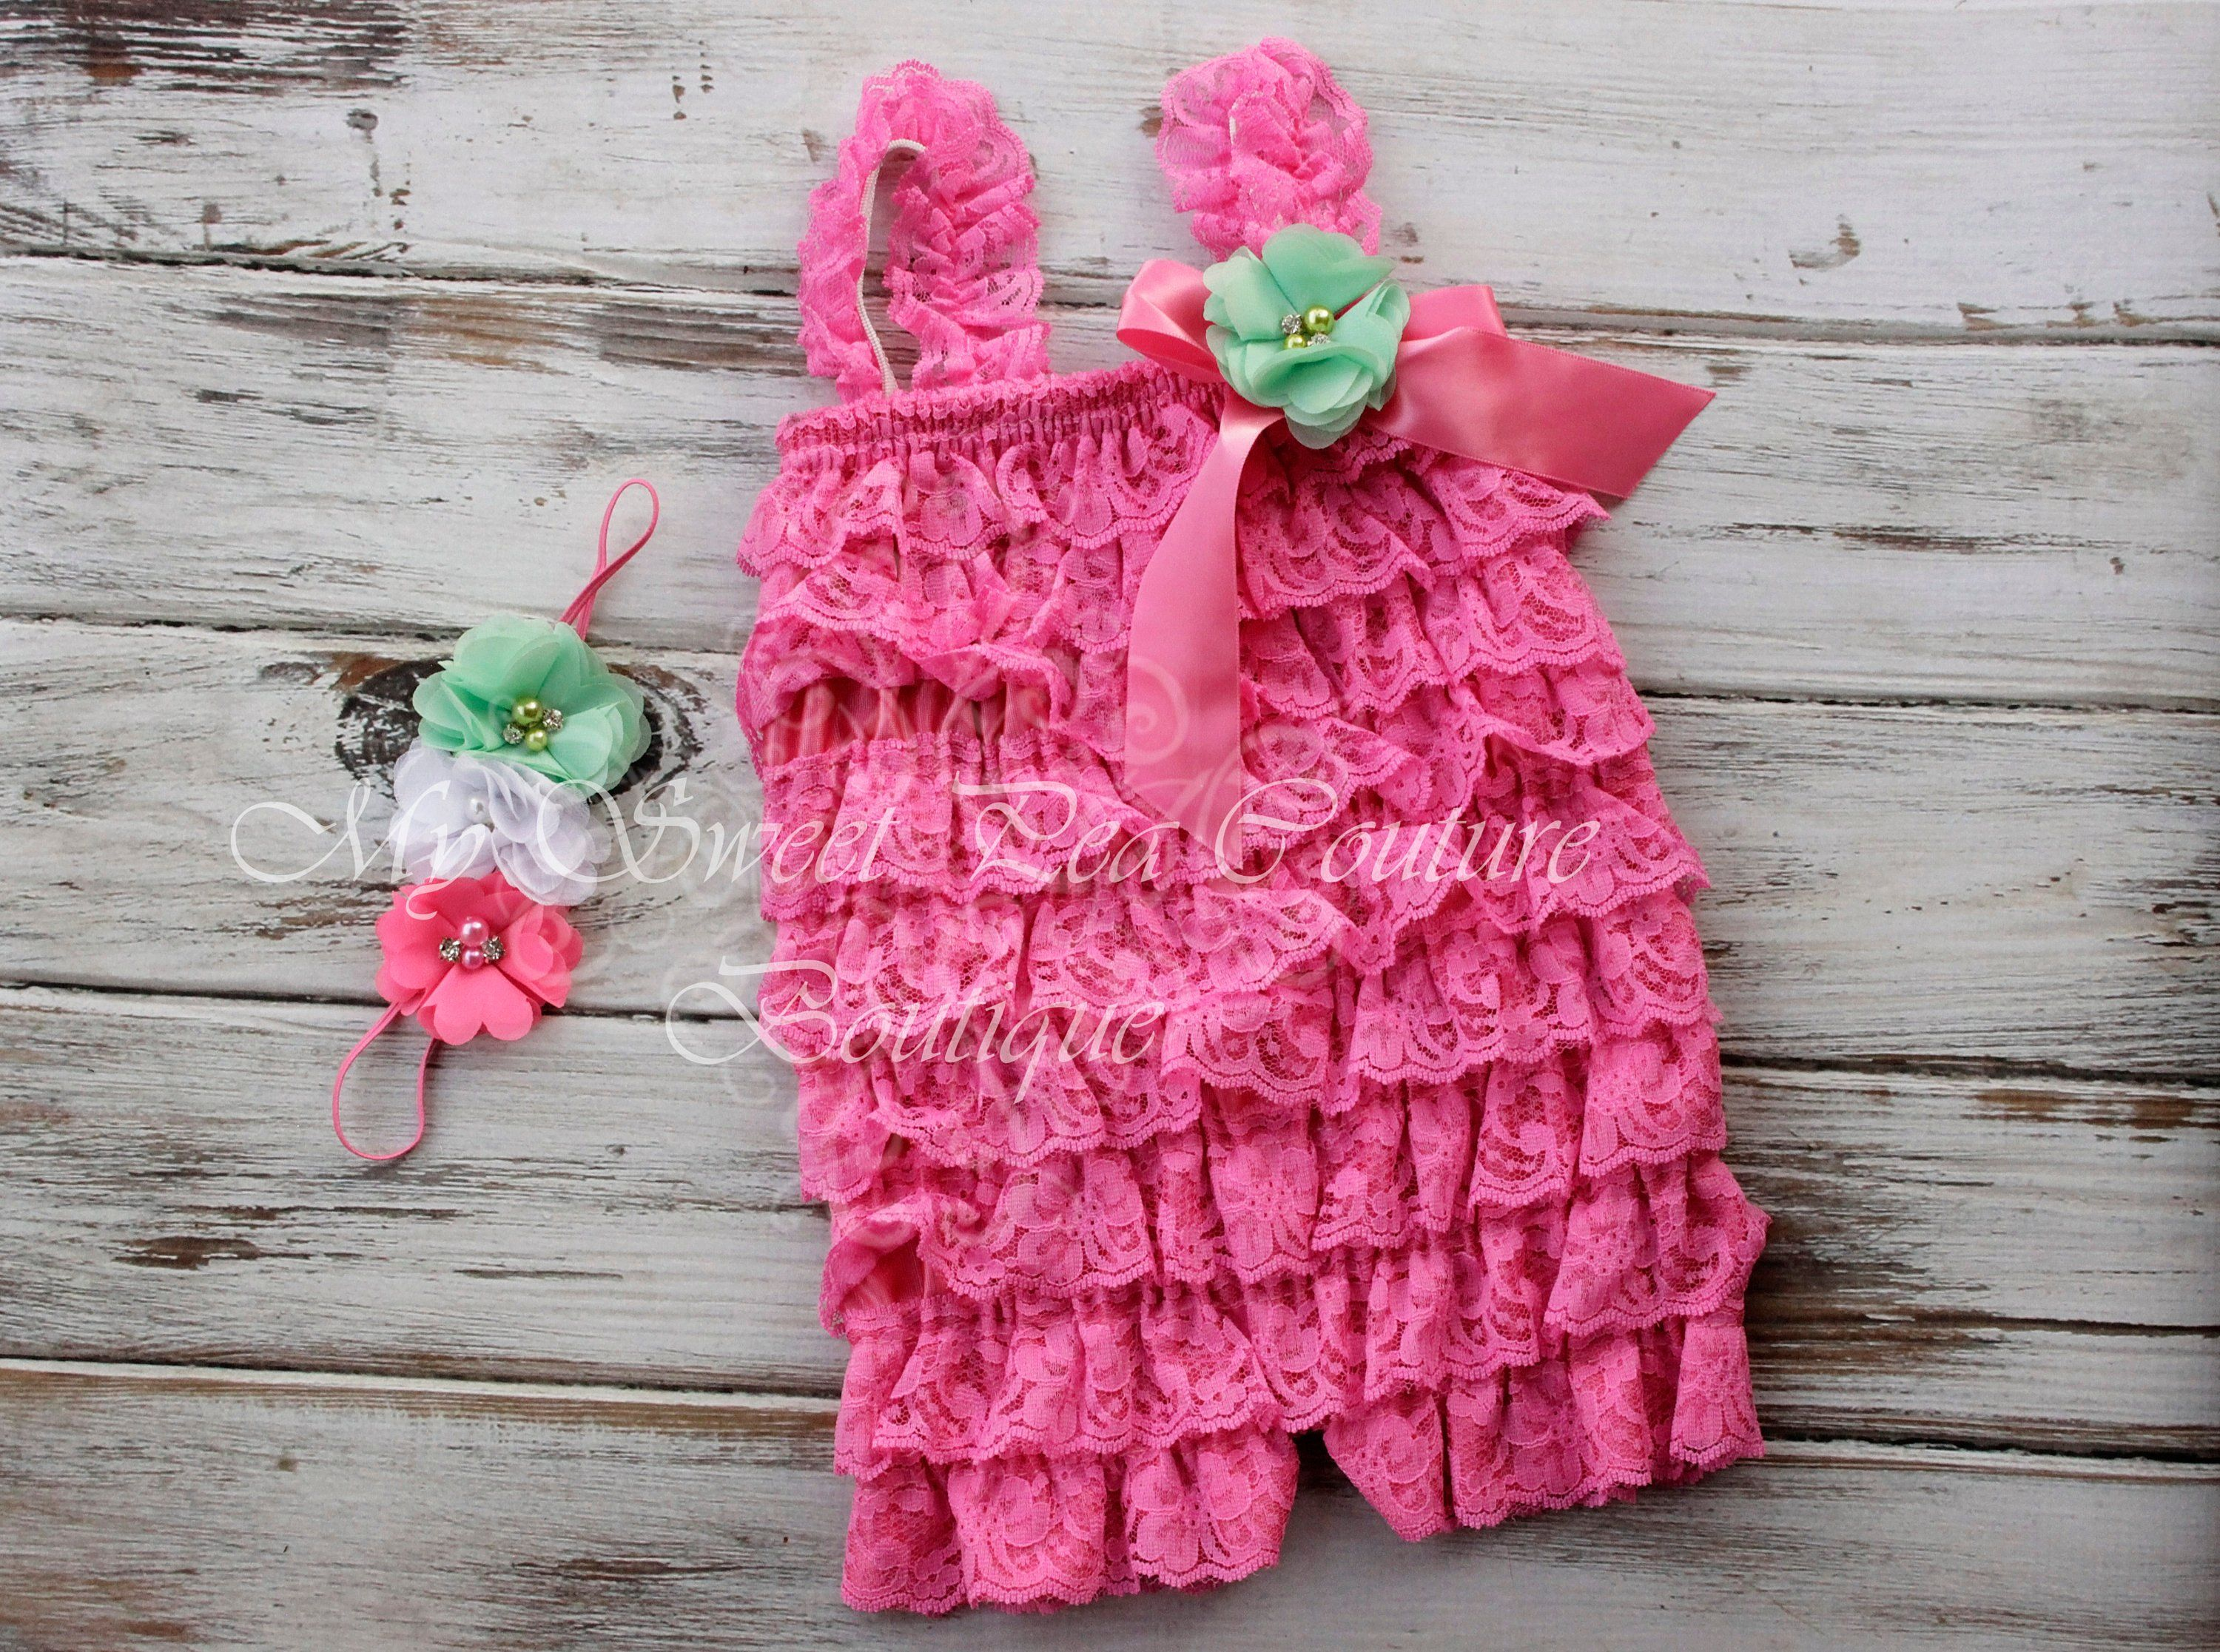 becb67e07b7 Watermelon Embelished Lace Romper   Headband Set- First Birthday Outfit-  Petti Romper- Cake Smash Outfit- Newborn Petti Romper- Headband by ...